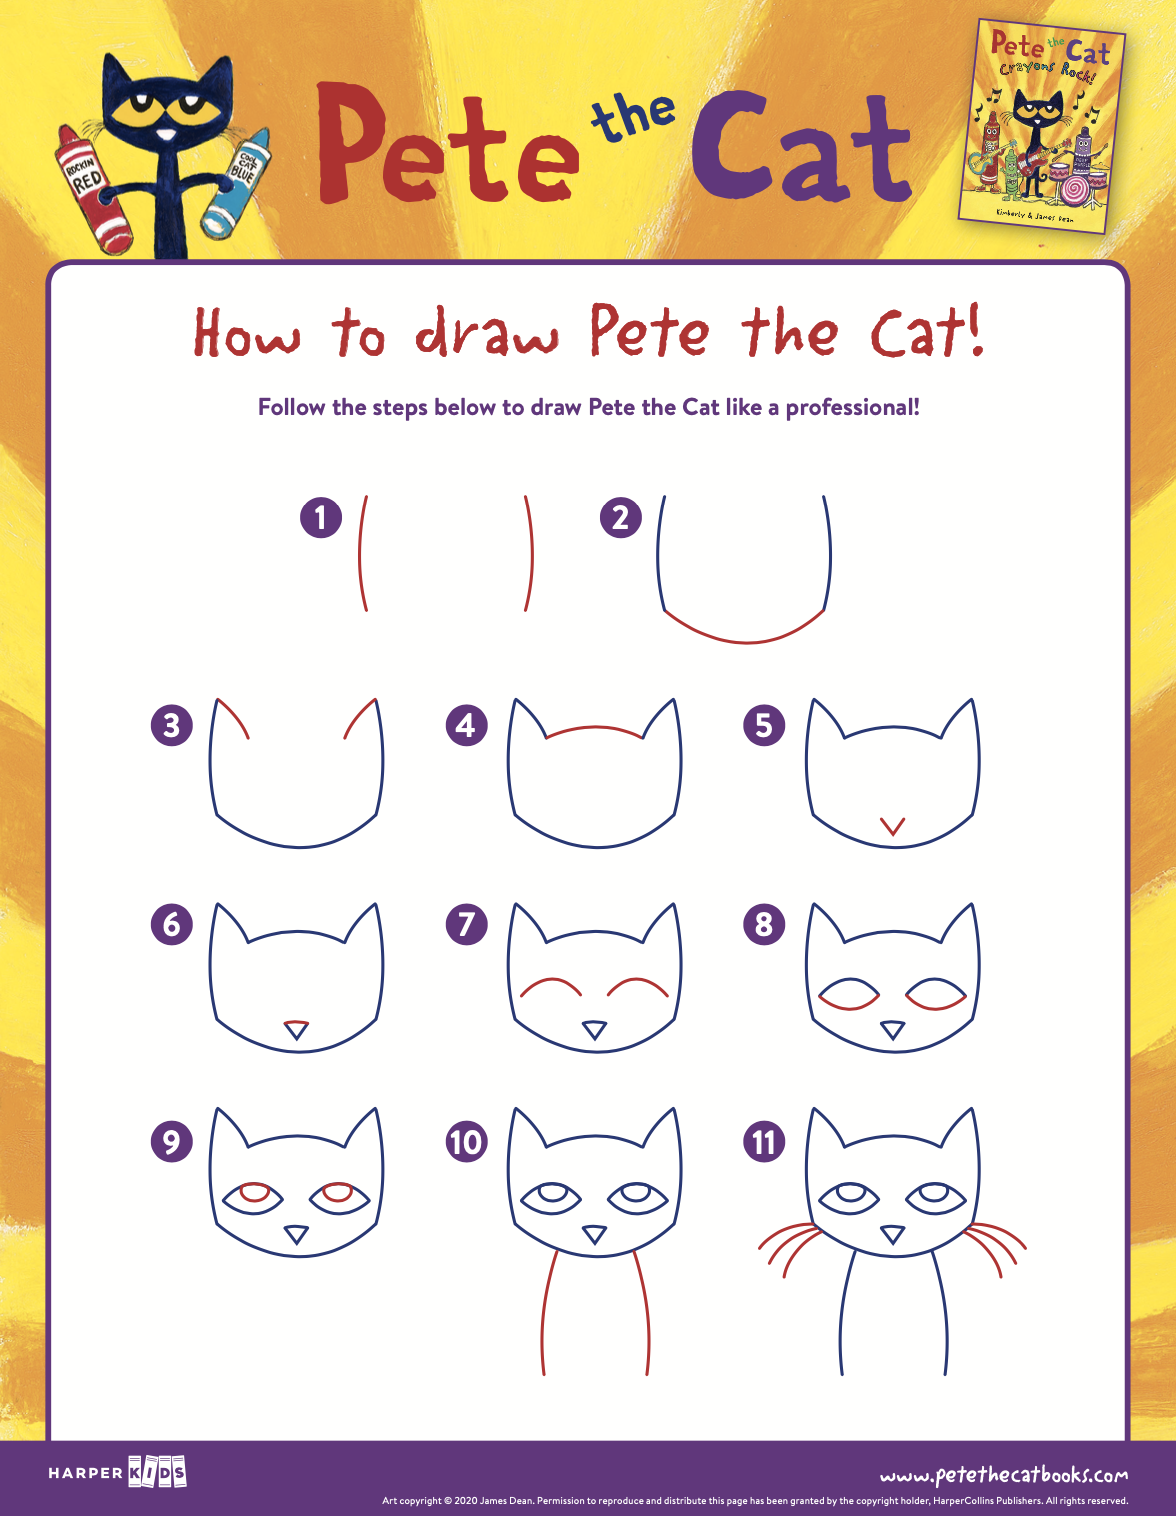 How to draw Pete the Cat!